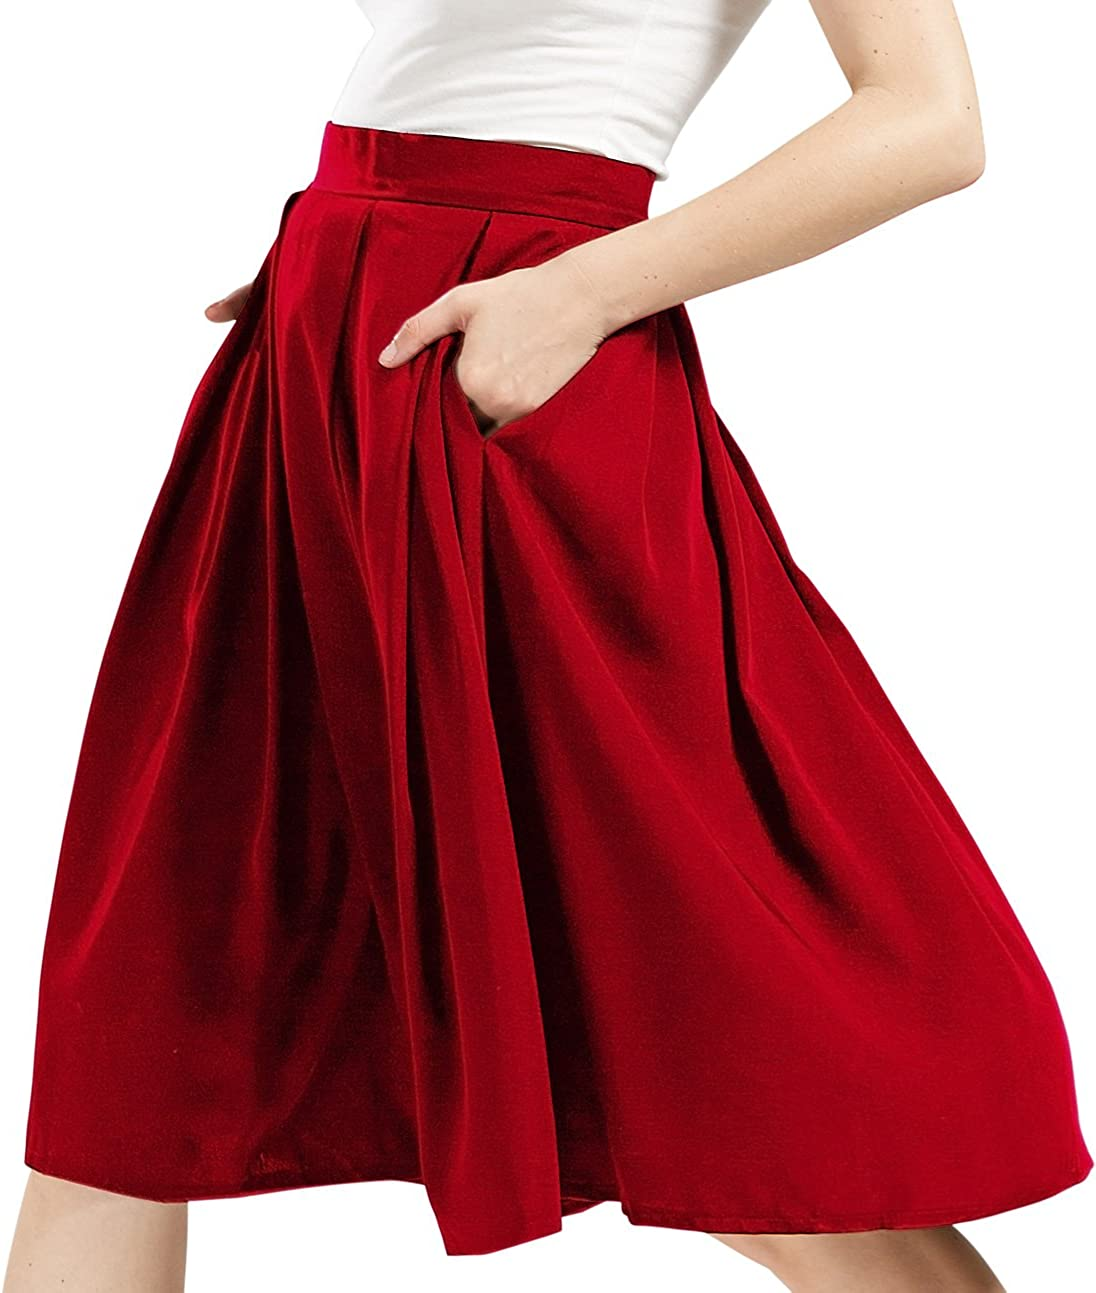 chouyatou Women's High Waisted A-Line Flare Pleated Midi Skater Skirt with Pockets